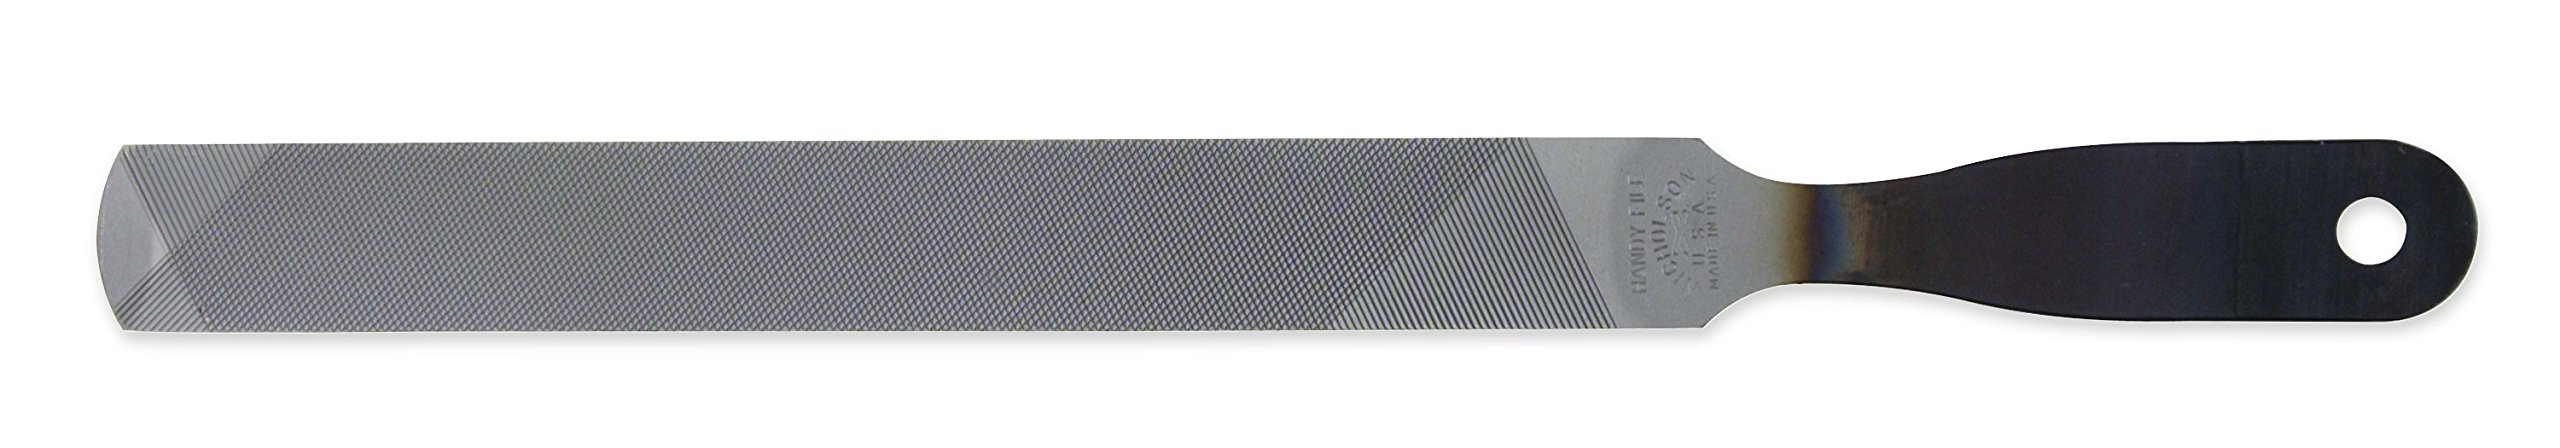 Nicholson Hand File with Handle (Boxed), American Pattern, Single/Double Cut, Rectangular, 8'' Length